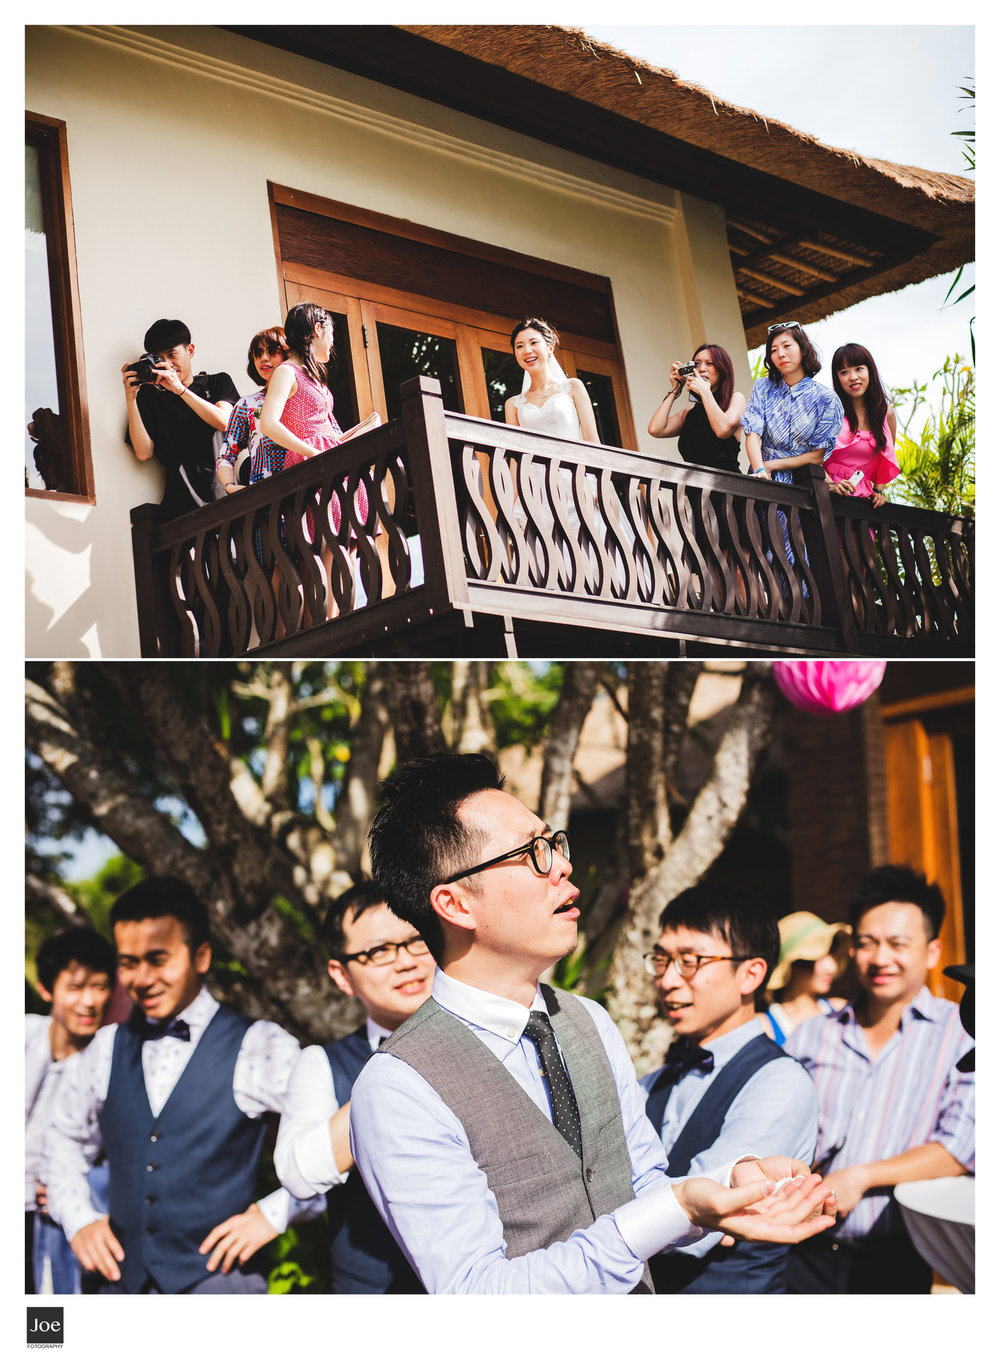 joe-fotography-bali-wedding-ayana-resort-janie-sean-35.jpg